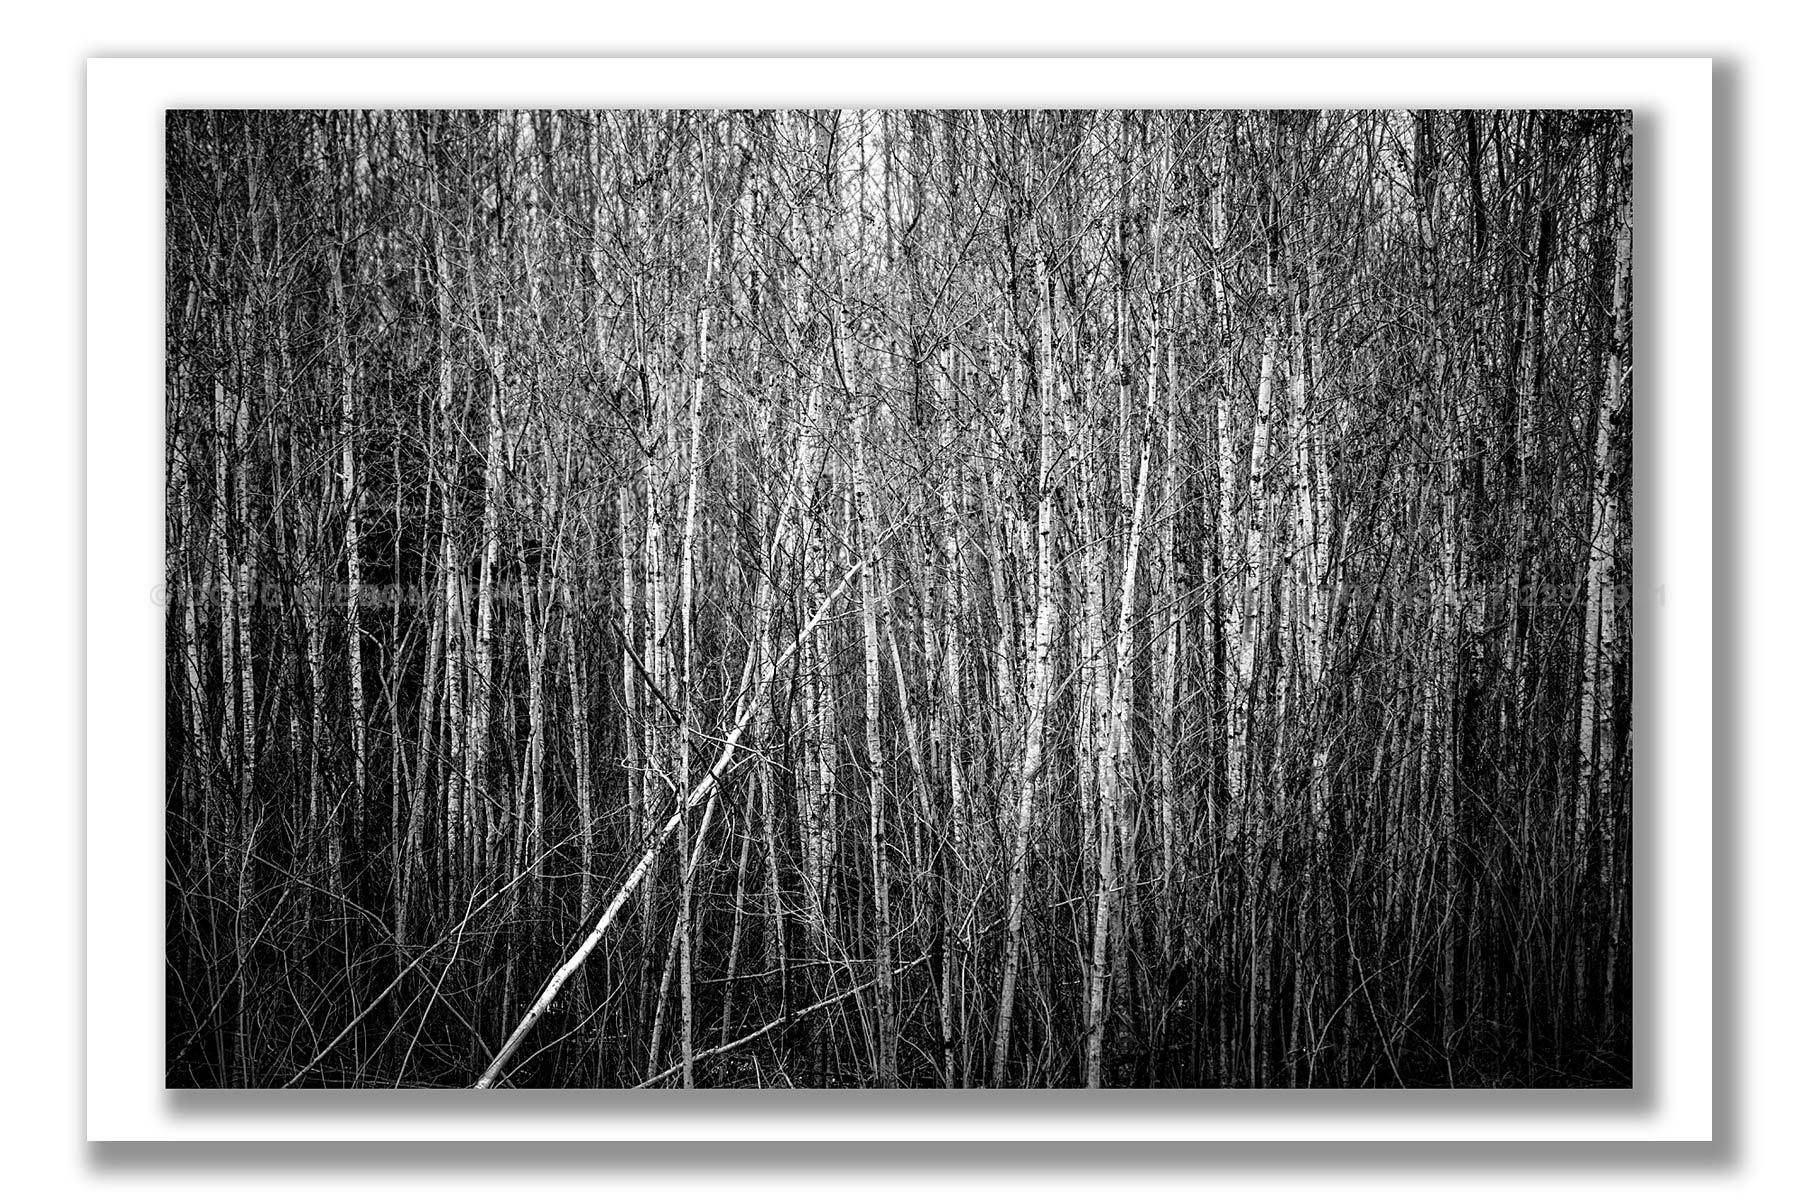 Thicket